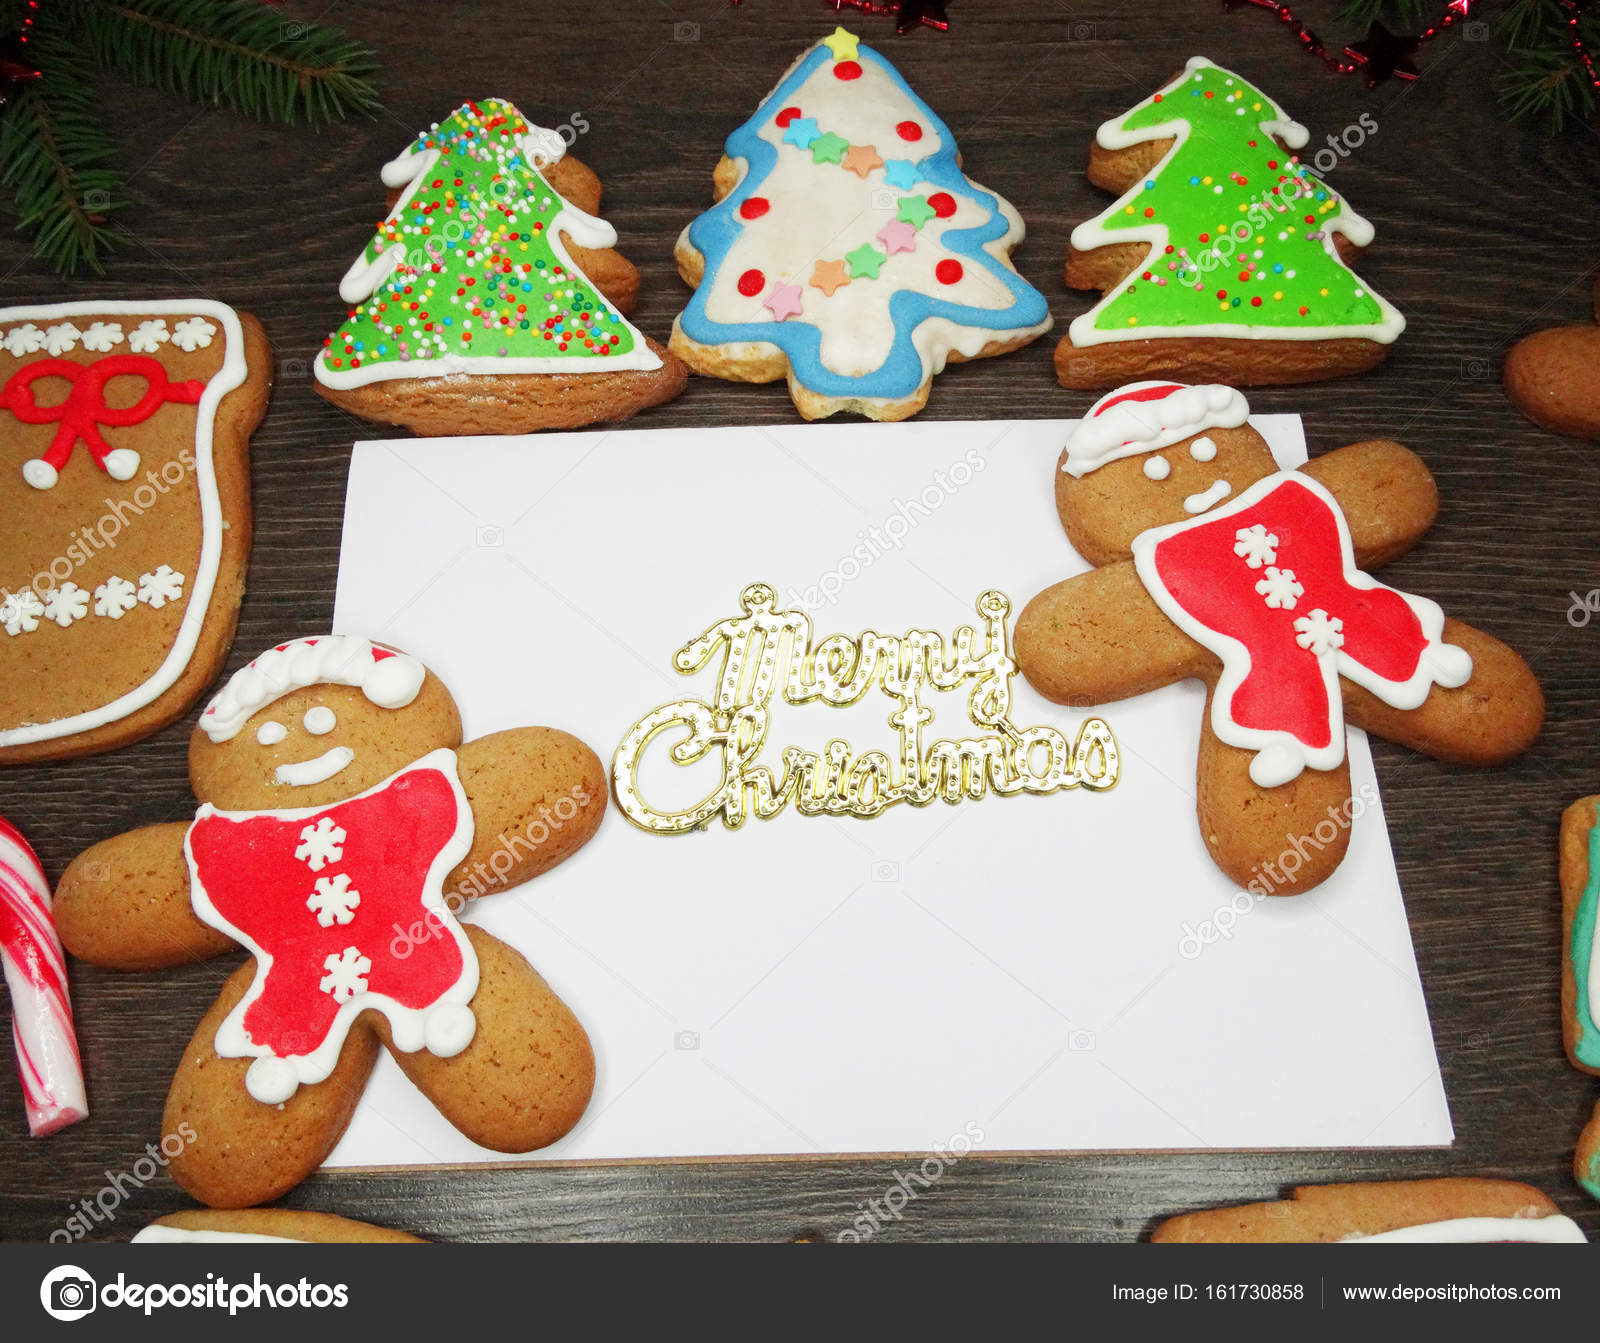 christmas cookies greeting card and decoration on wooden backgro ...